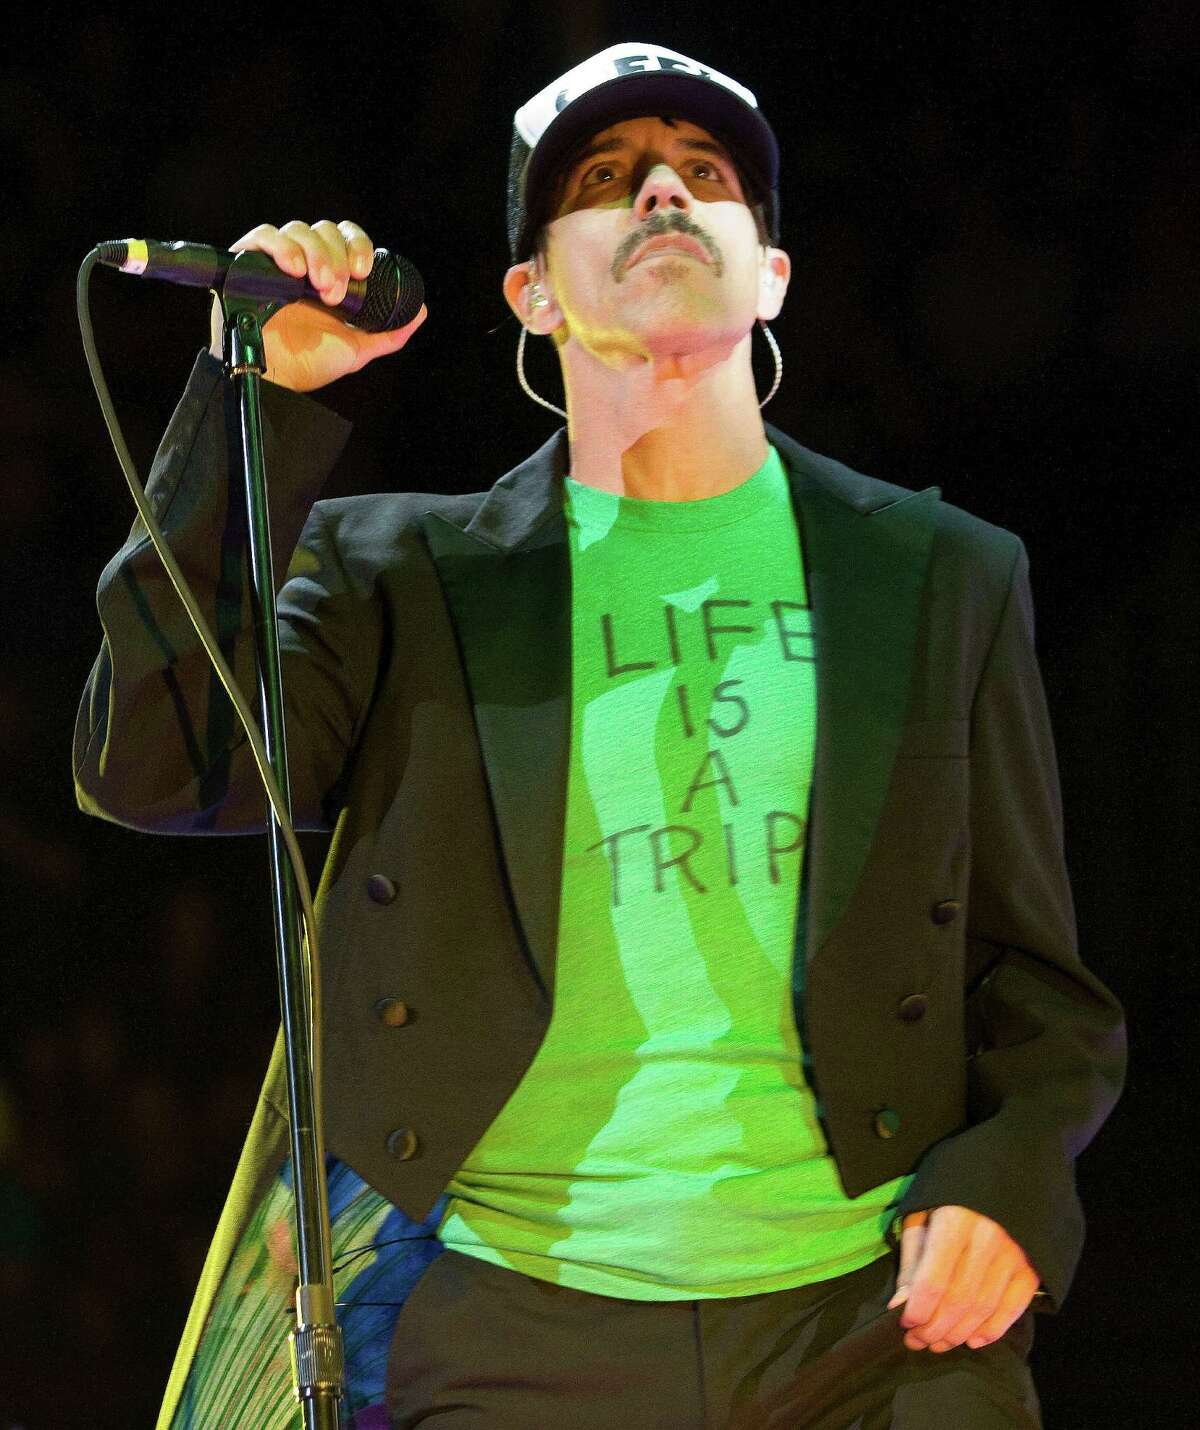 Anthony Kiedis of the Red Hot Chili Peppers sing the hit song Californication at Toyota Center on Saturday, Oct. 20, 2012, in Houston.